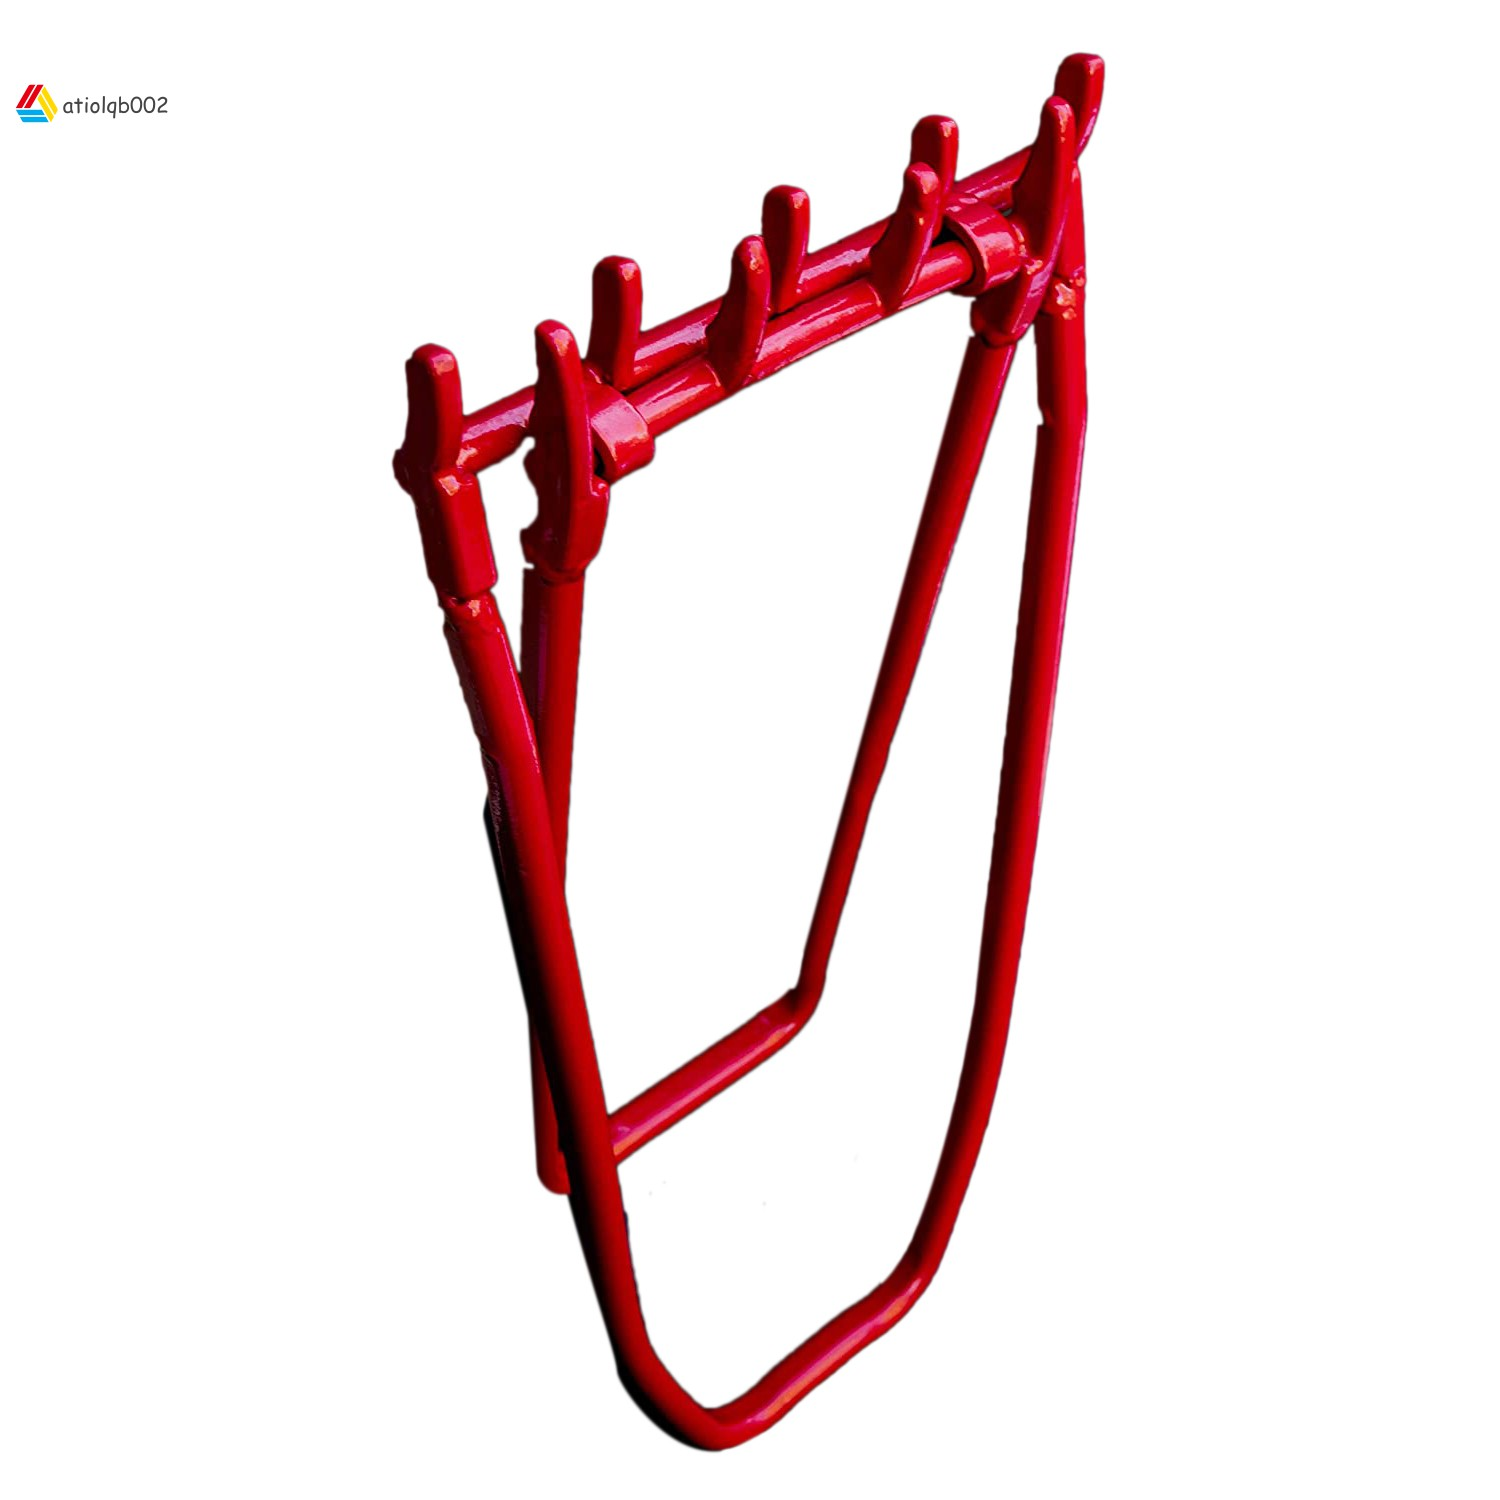 Picture of: Wire Tight Fence Crimping Tool Ranch Wire Tightener And Repair Slick High Tensile And Barbed Wire Shopee Singapore